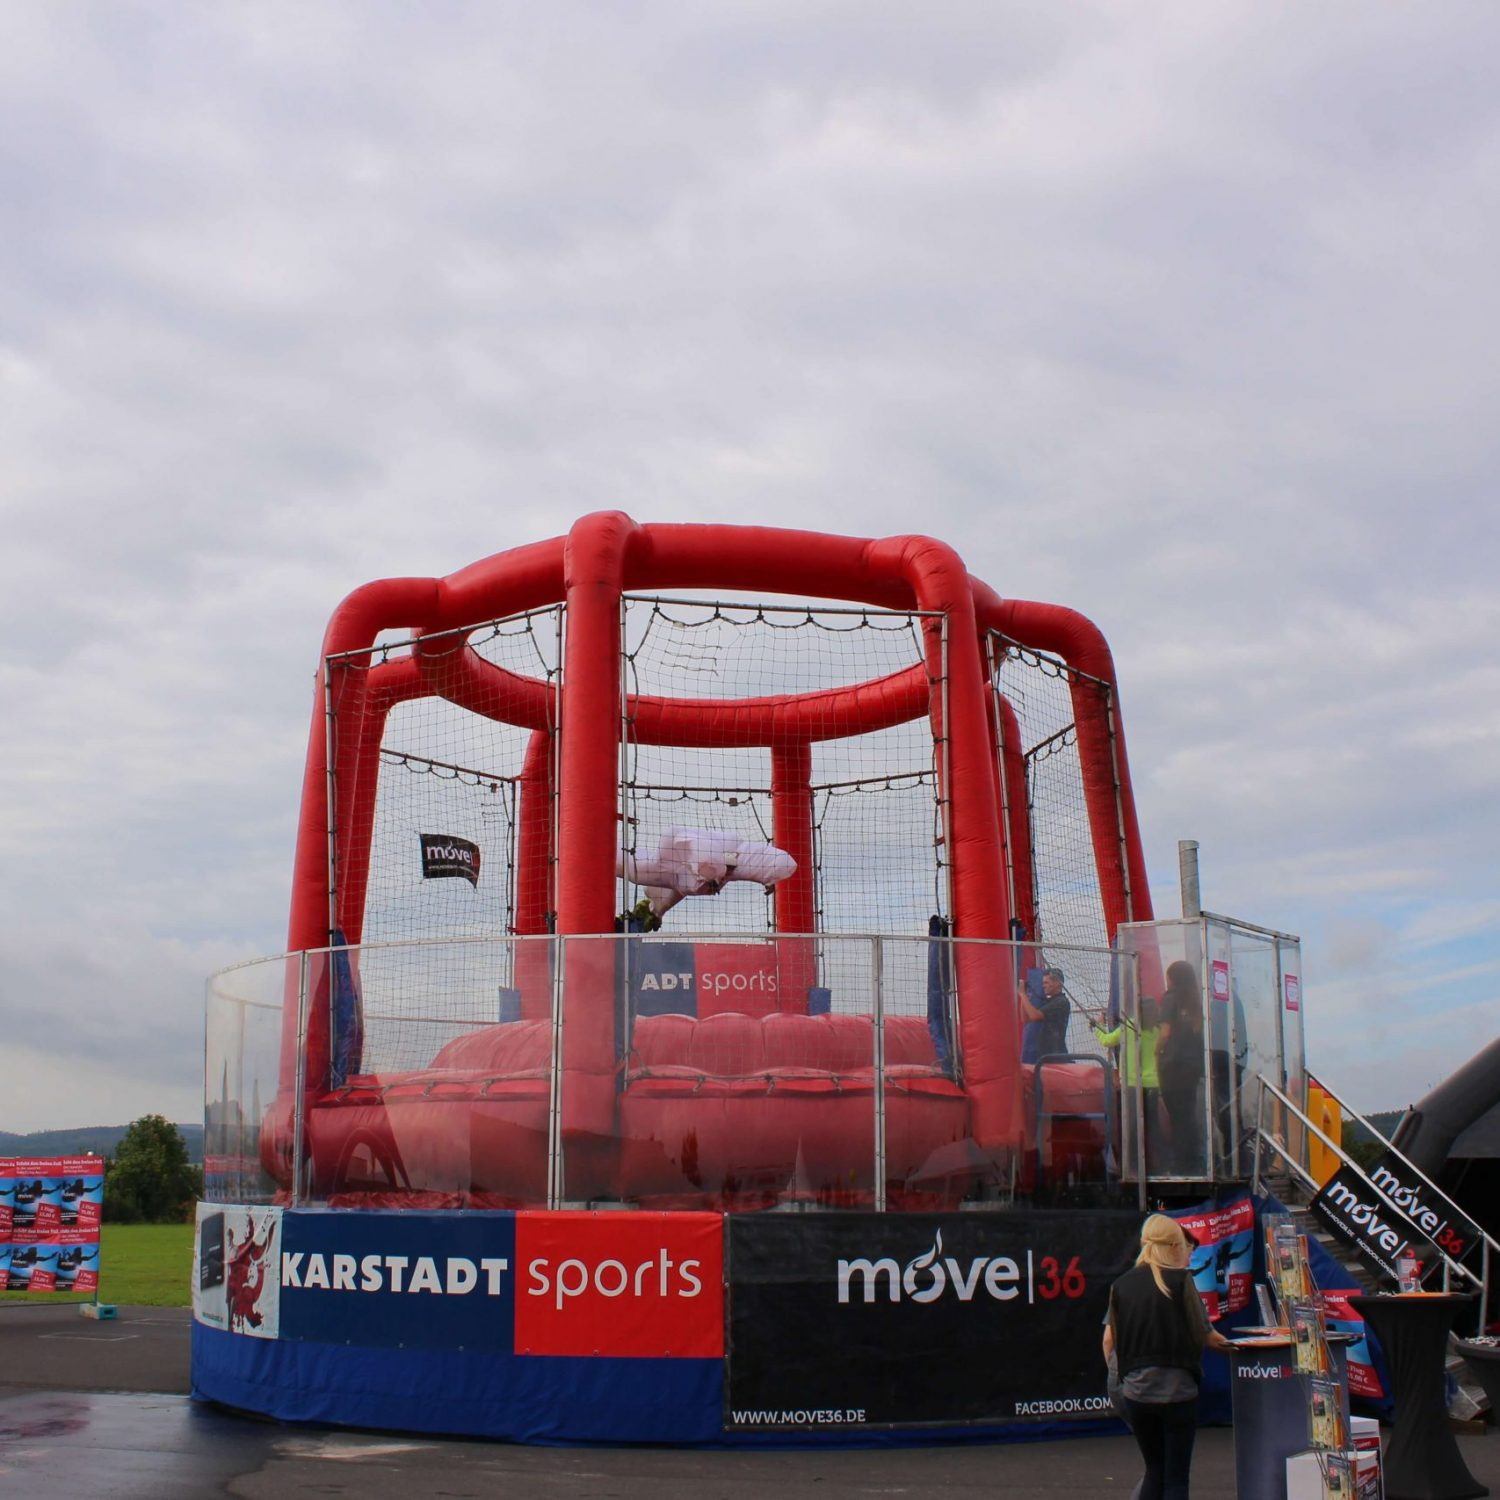 Mobile-Event-Body-flying-Anlage-air-power-arena-hückelhoven